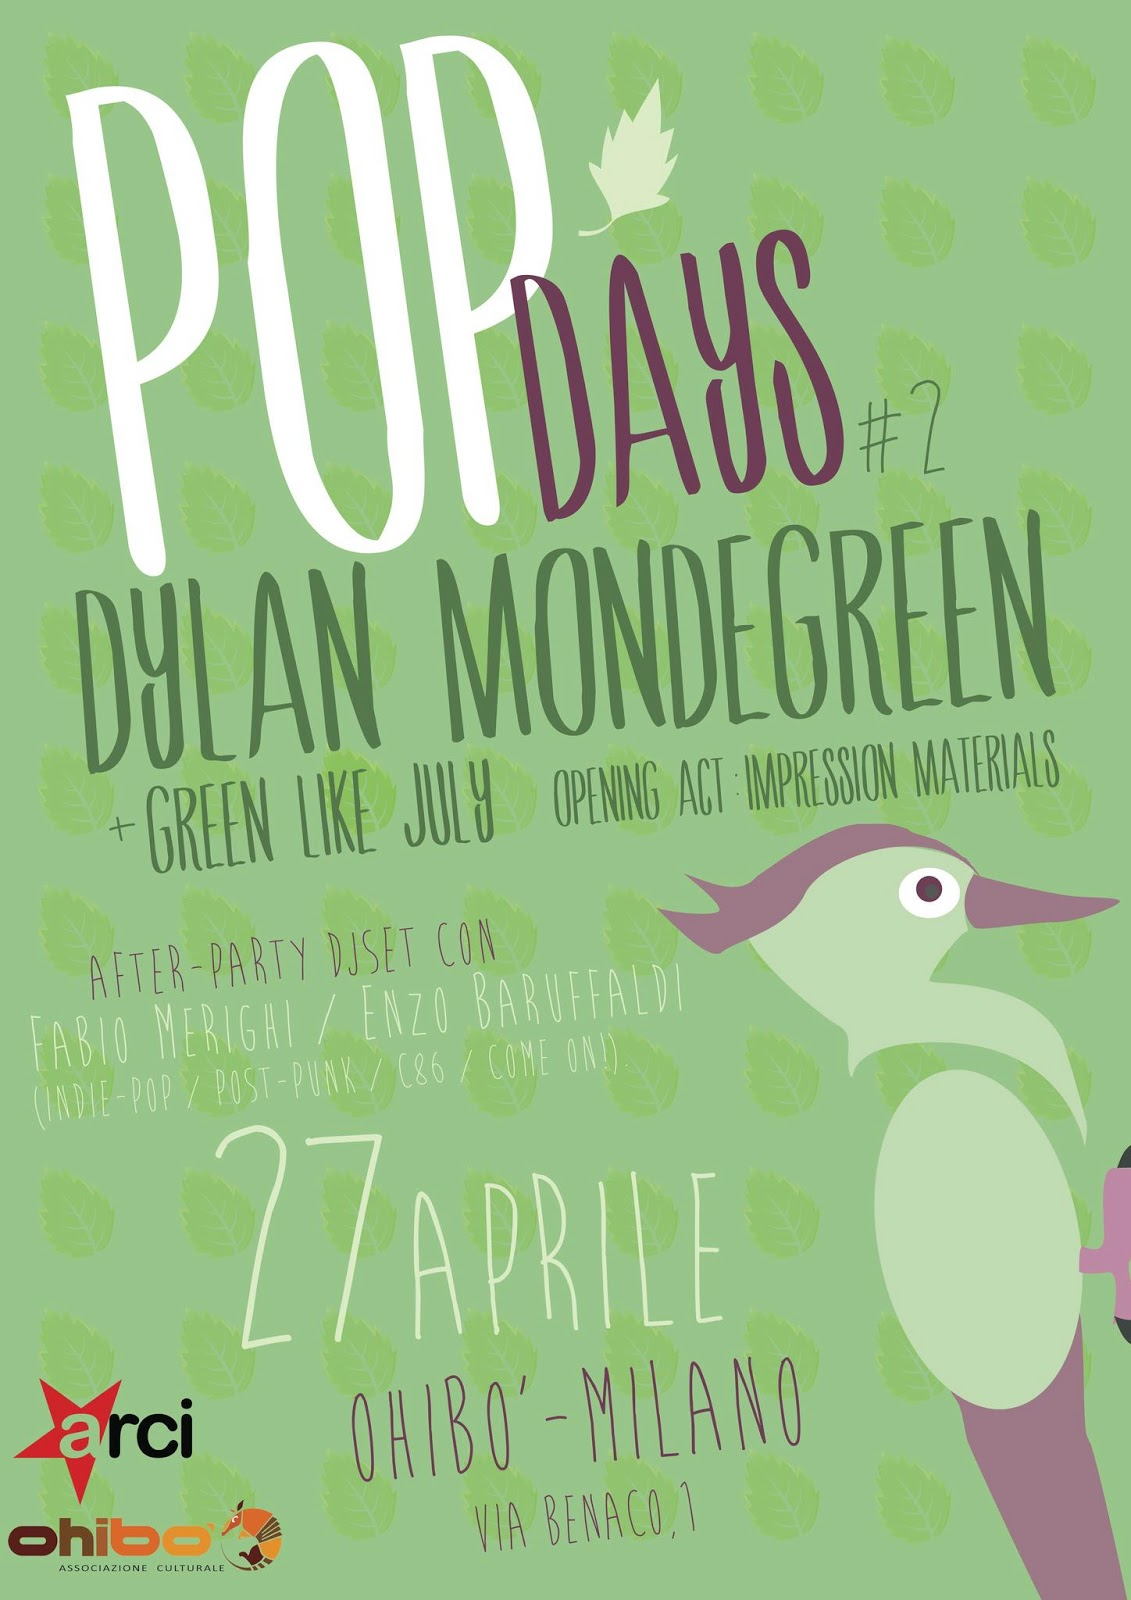 POP DAYS #2: DYLAN MONDEGREEN (NOR) + GREEN LIKE JULY (ITA) @ MILANO, OHIBO - 27/04